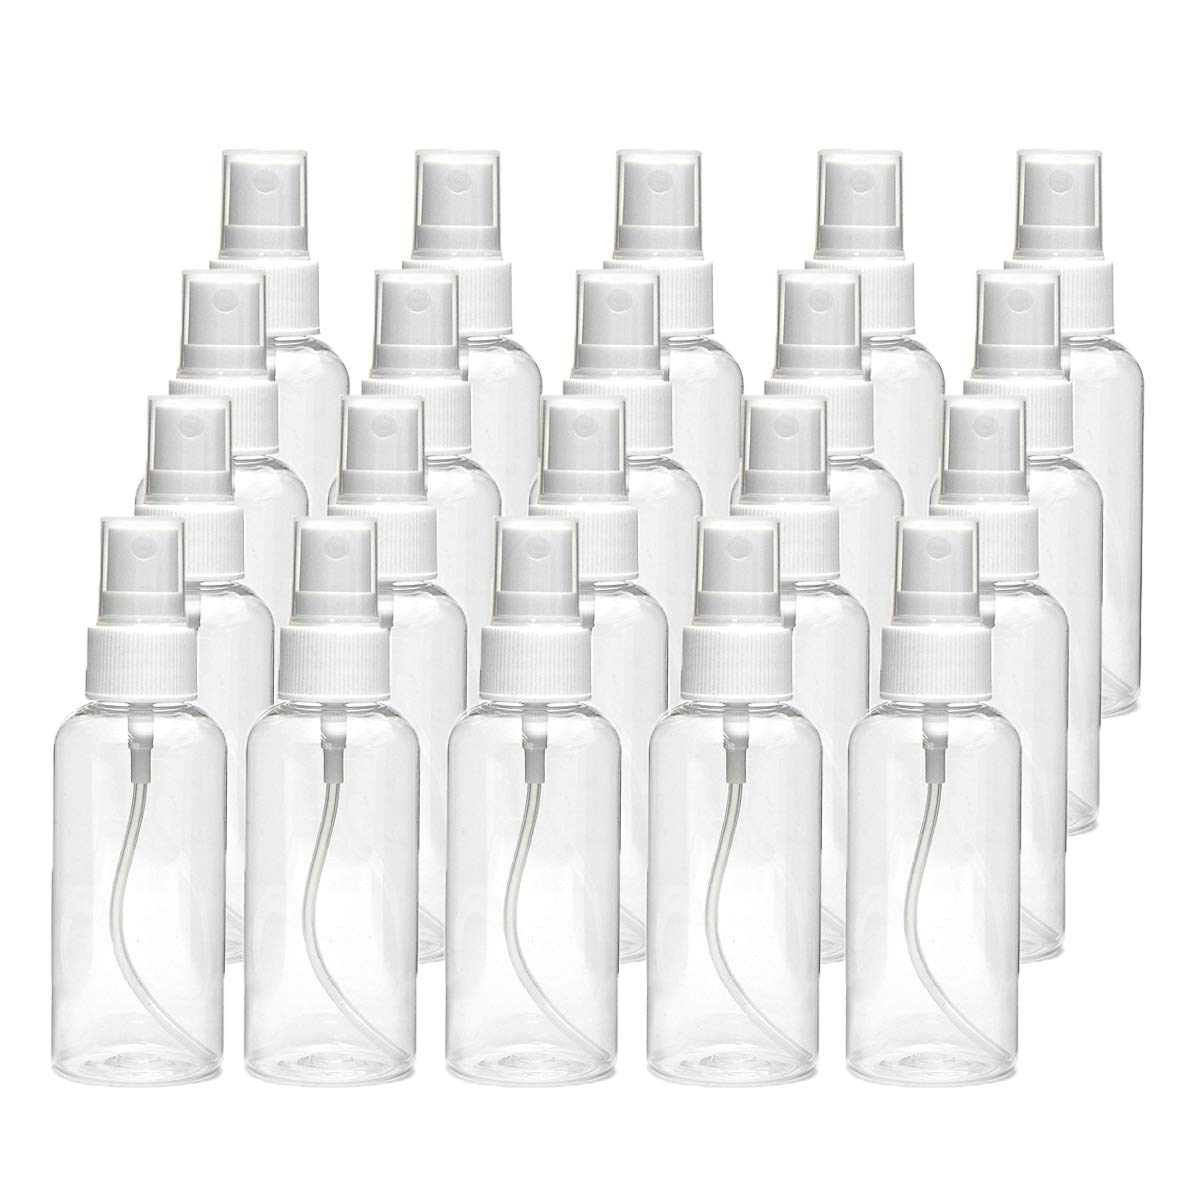 20 PCS 30 ml(1oz) Clear Plastic Mist Spray bottle,Transparent Travel Bottle,Portable Refillable Spray Sprayer Bottle for Travel, Cleaning, Essential Oils